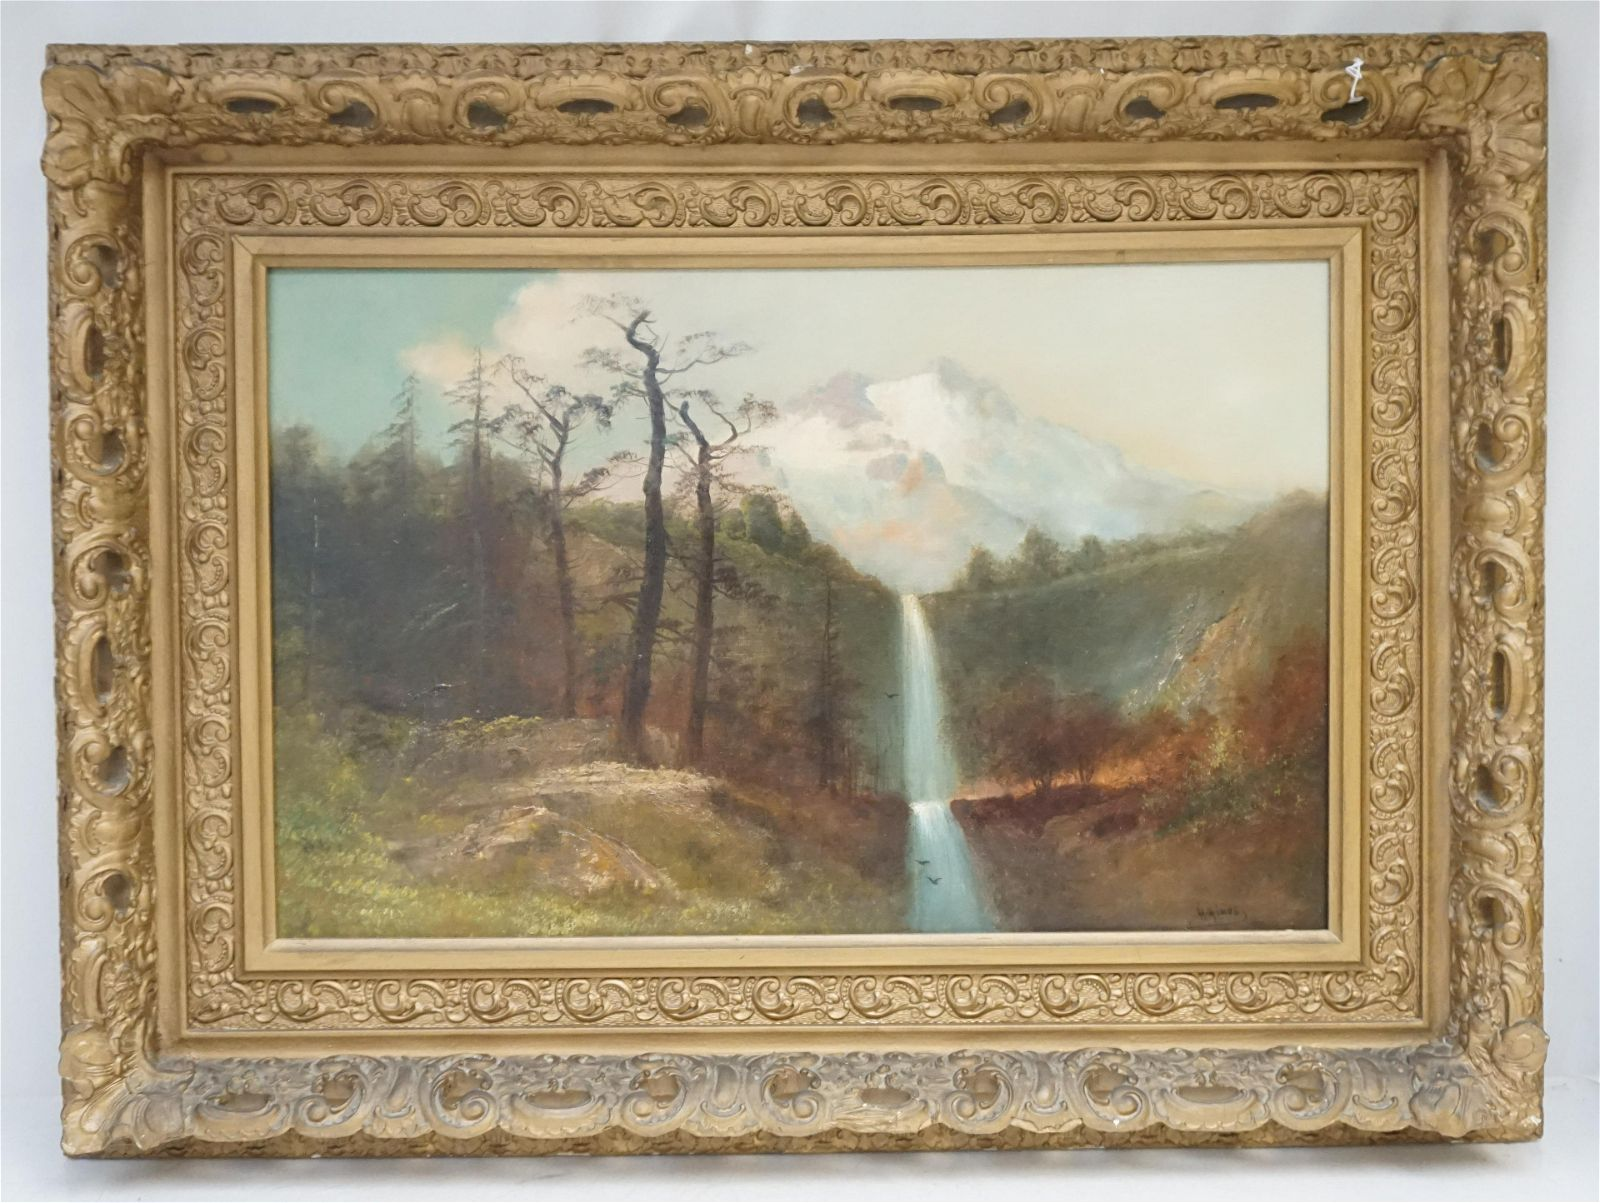 LARGE WESTERN LANDSCAPE WATERFALLS OIL PAINTING